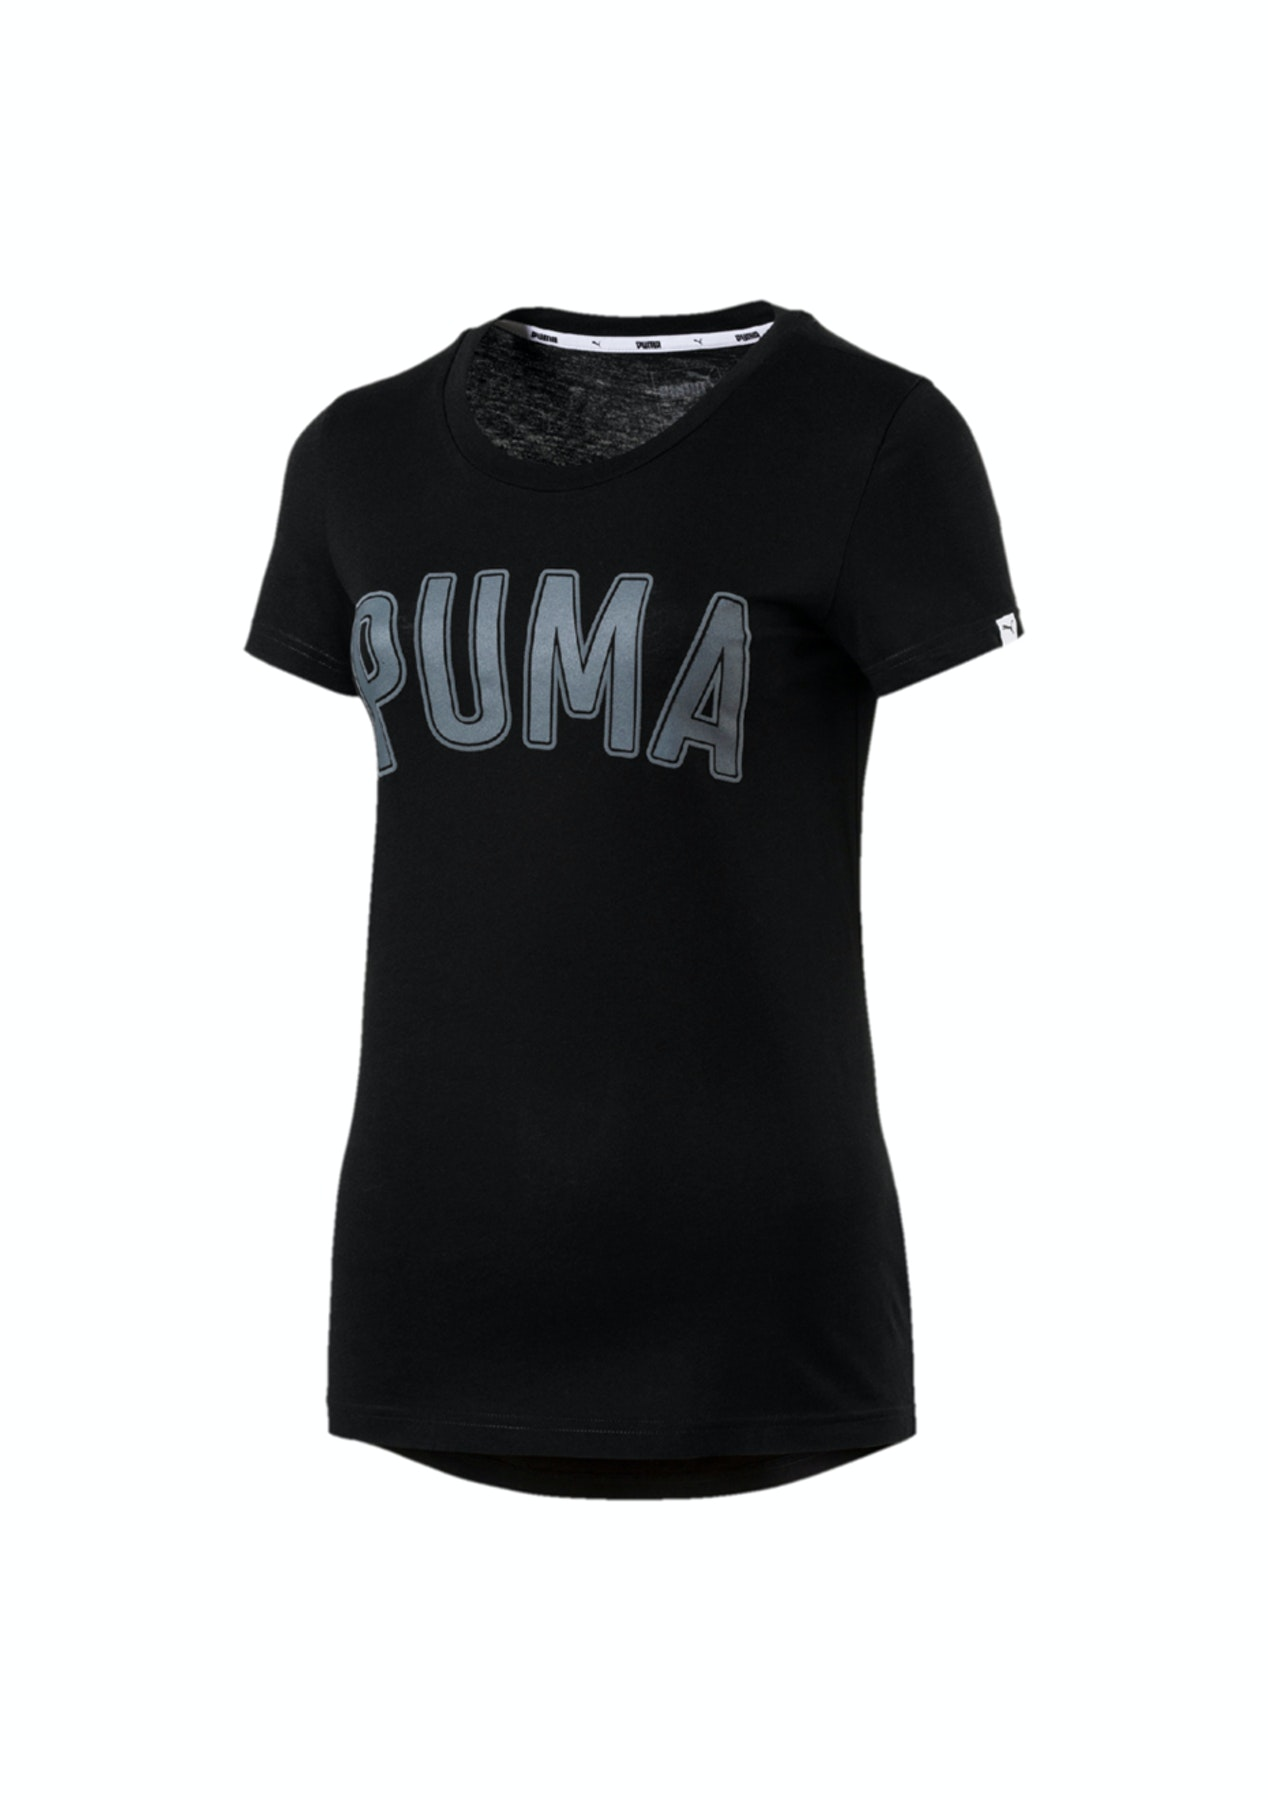 5c22c78d657 Puma - Womens Athletic Tee Black - Puma Flash Sale - Onceit